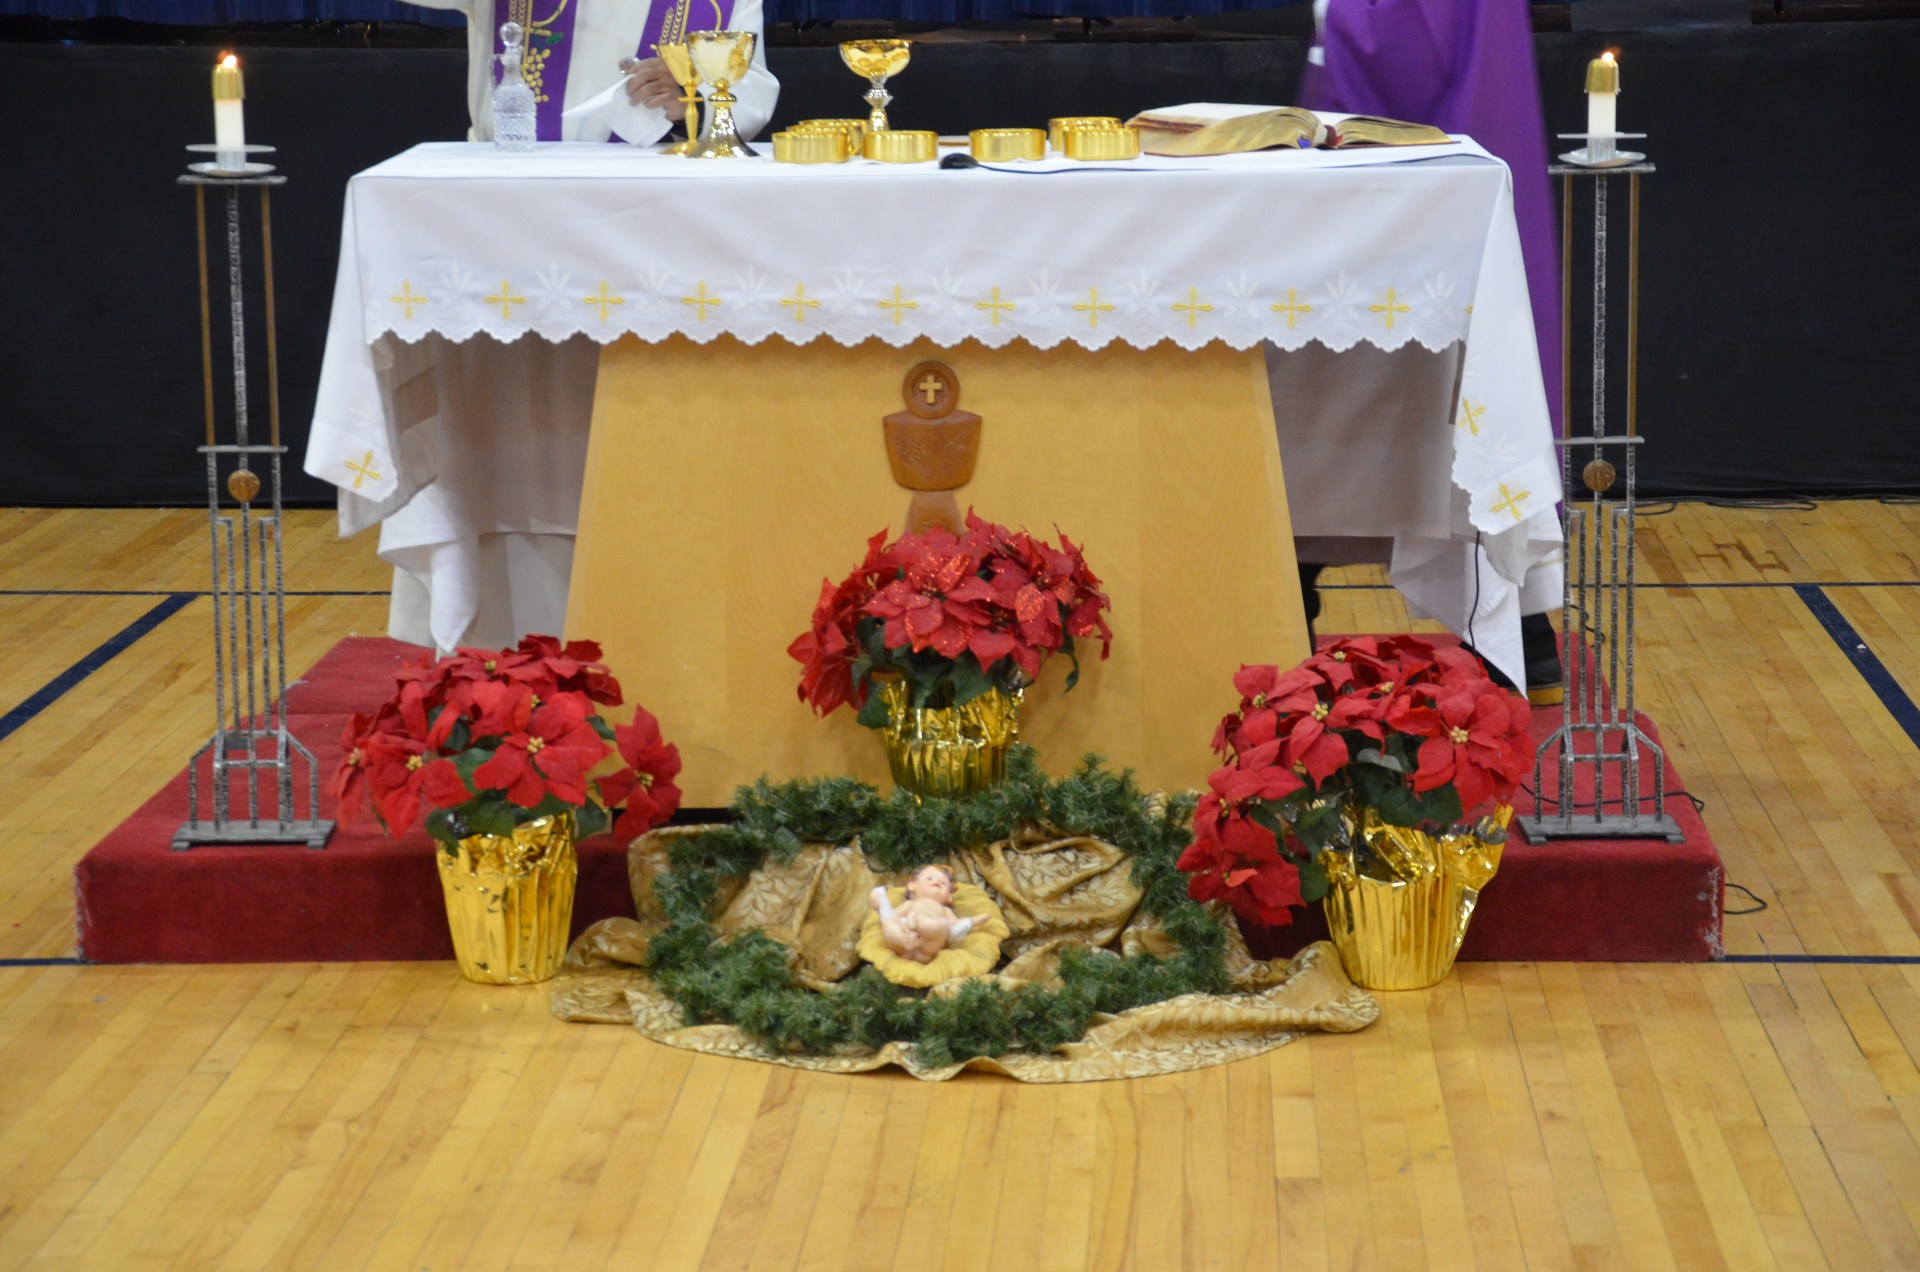 Altar with baby Jesus in manger